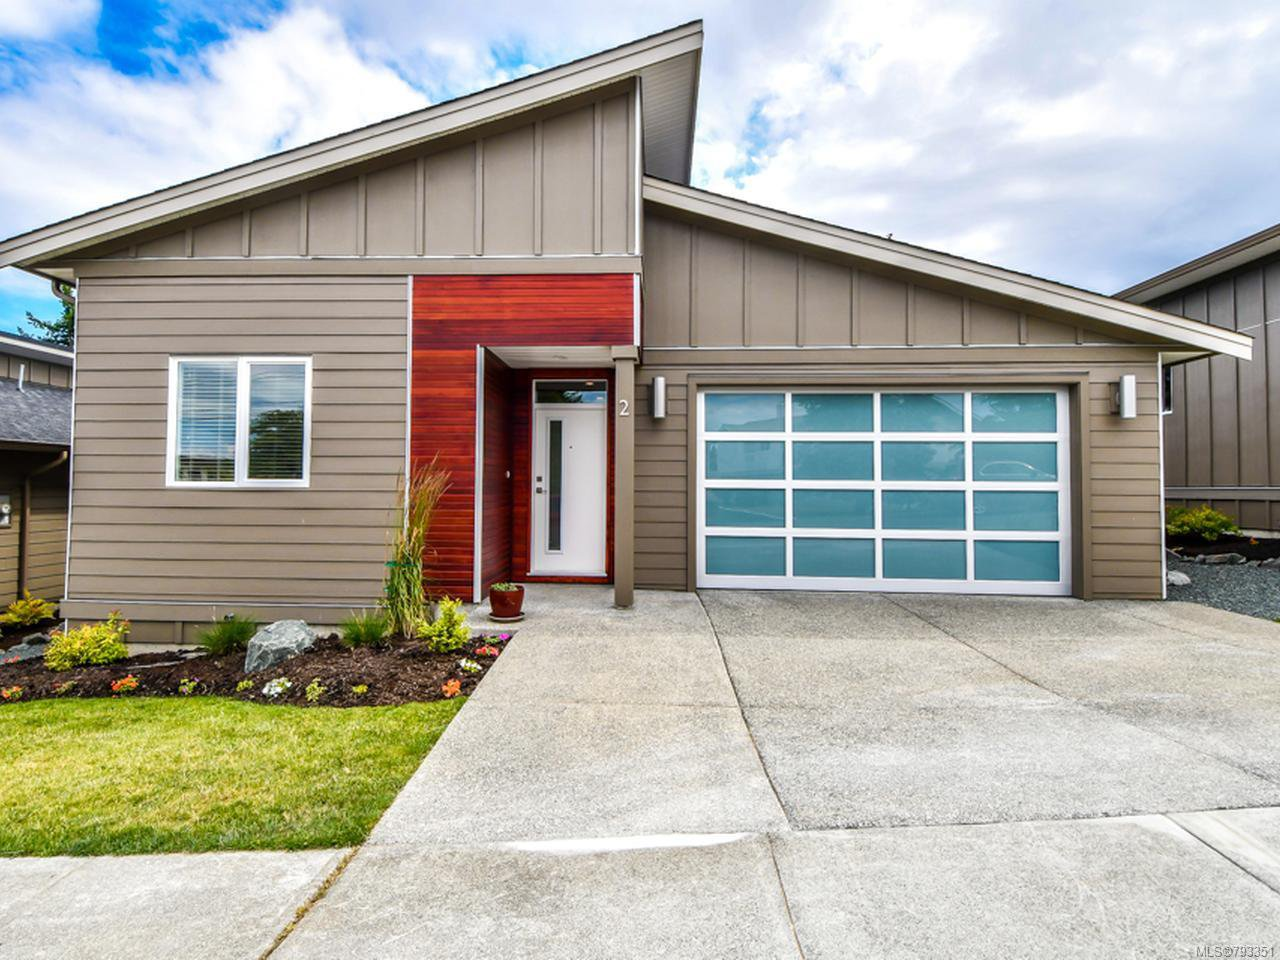 Main Photo: 2 325 Niluht Rd in CAMPBELL RIVER: CR Campbell River Central Row/Townhouse for sale (Campbell River)  : MLS®# 793351